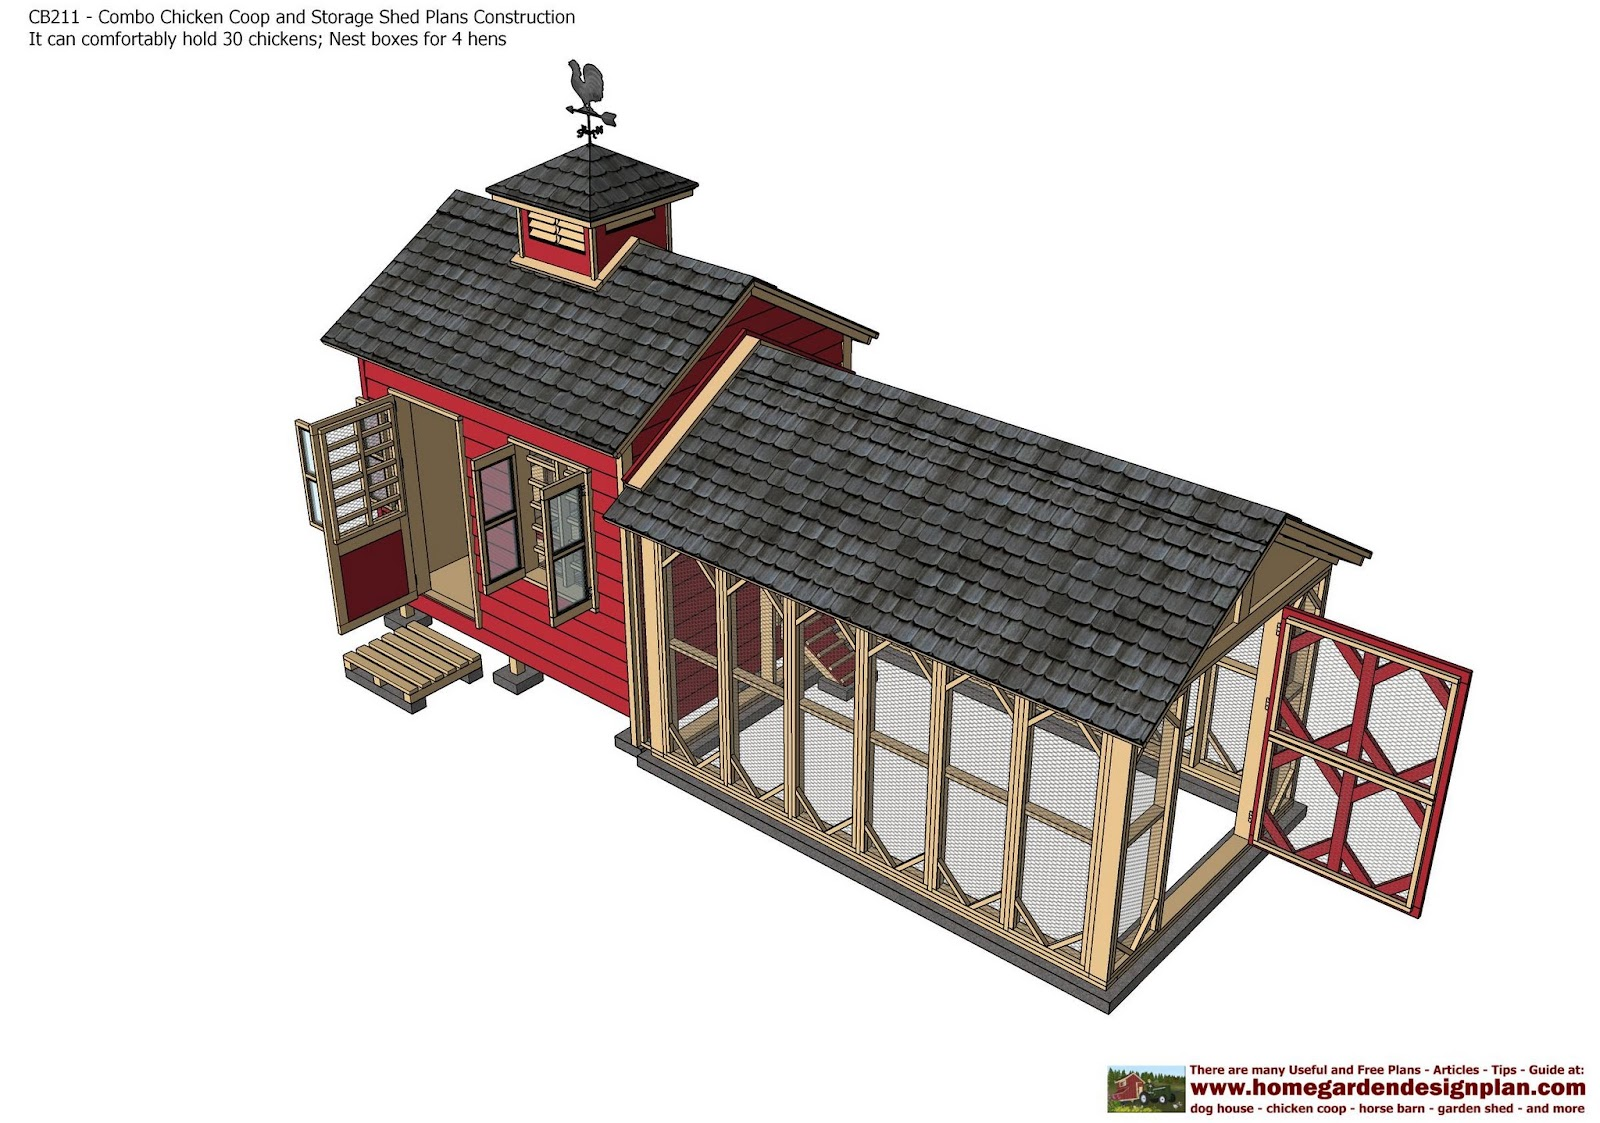 Combo Chicken Coop Garden Shed Plans   Chicken Coop Plans   Storage